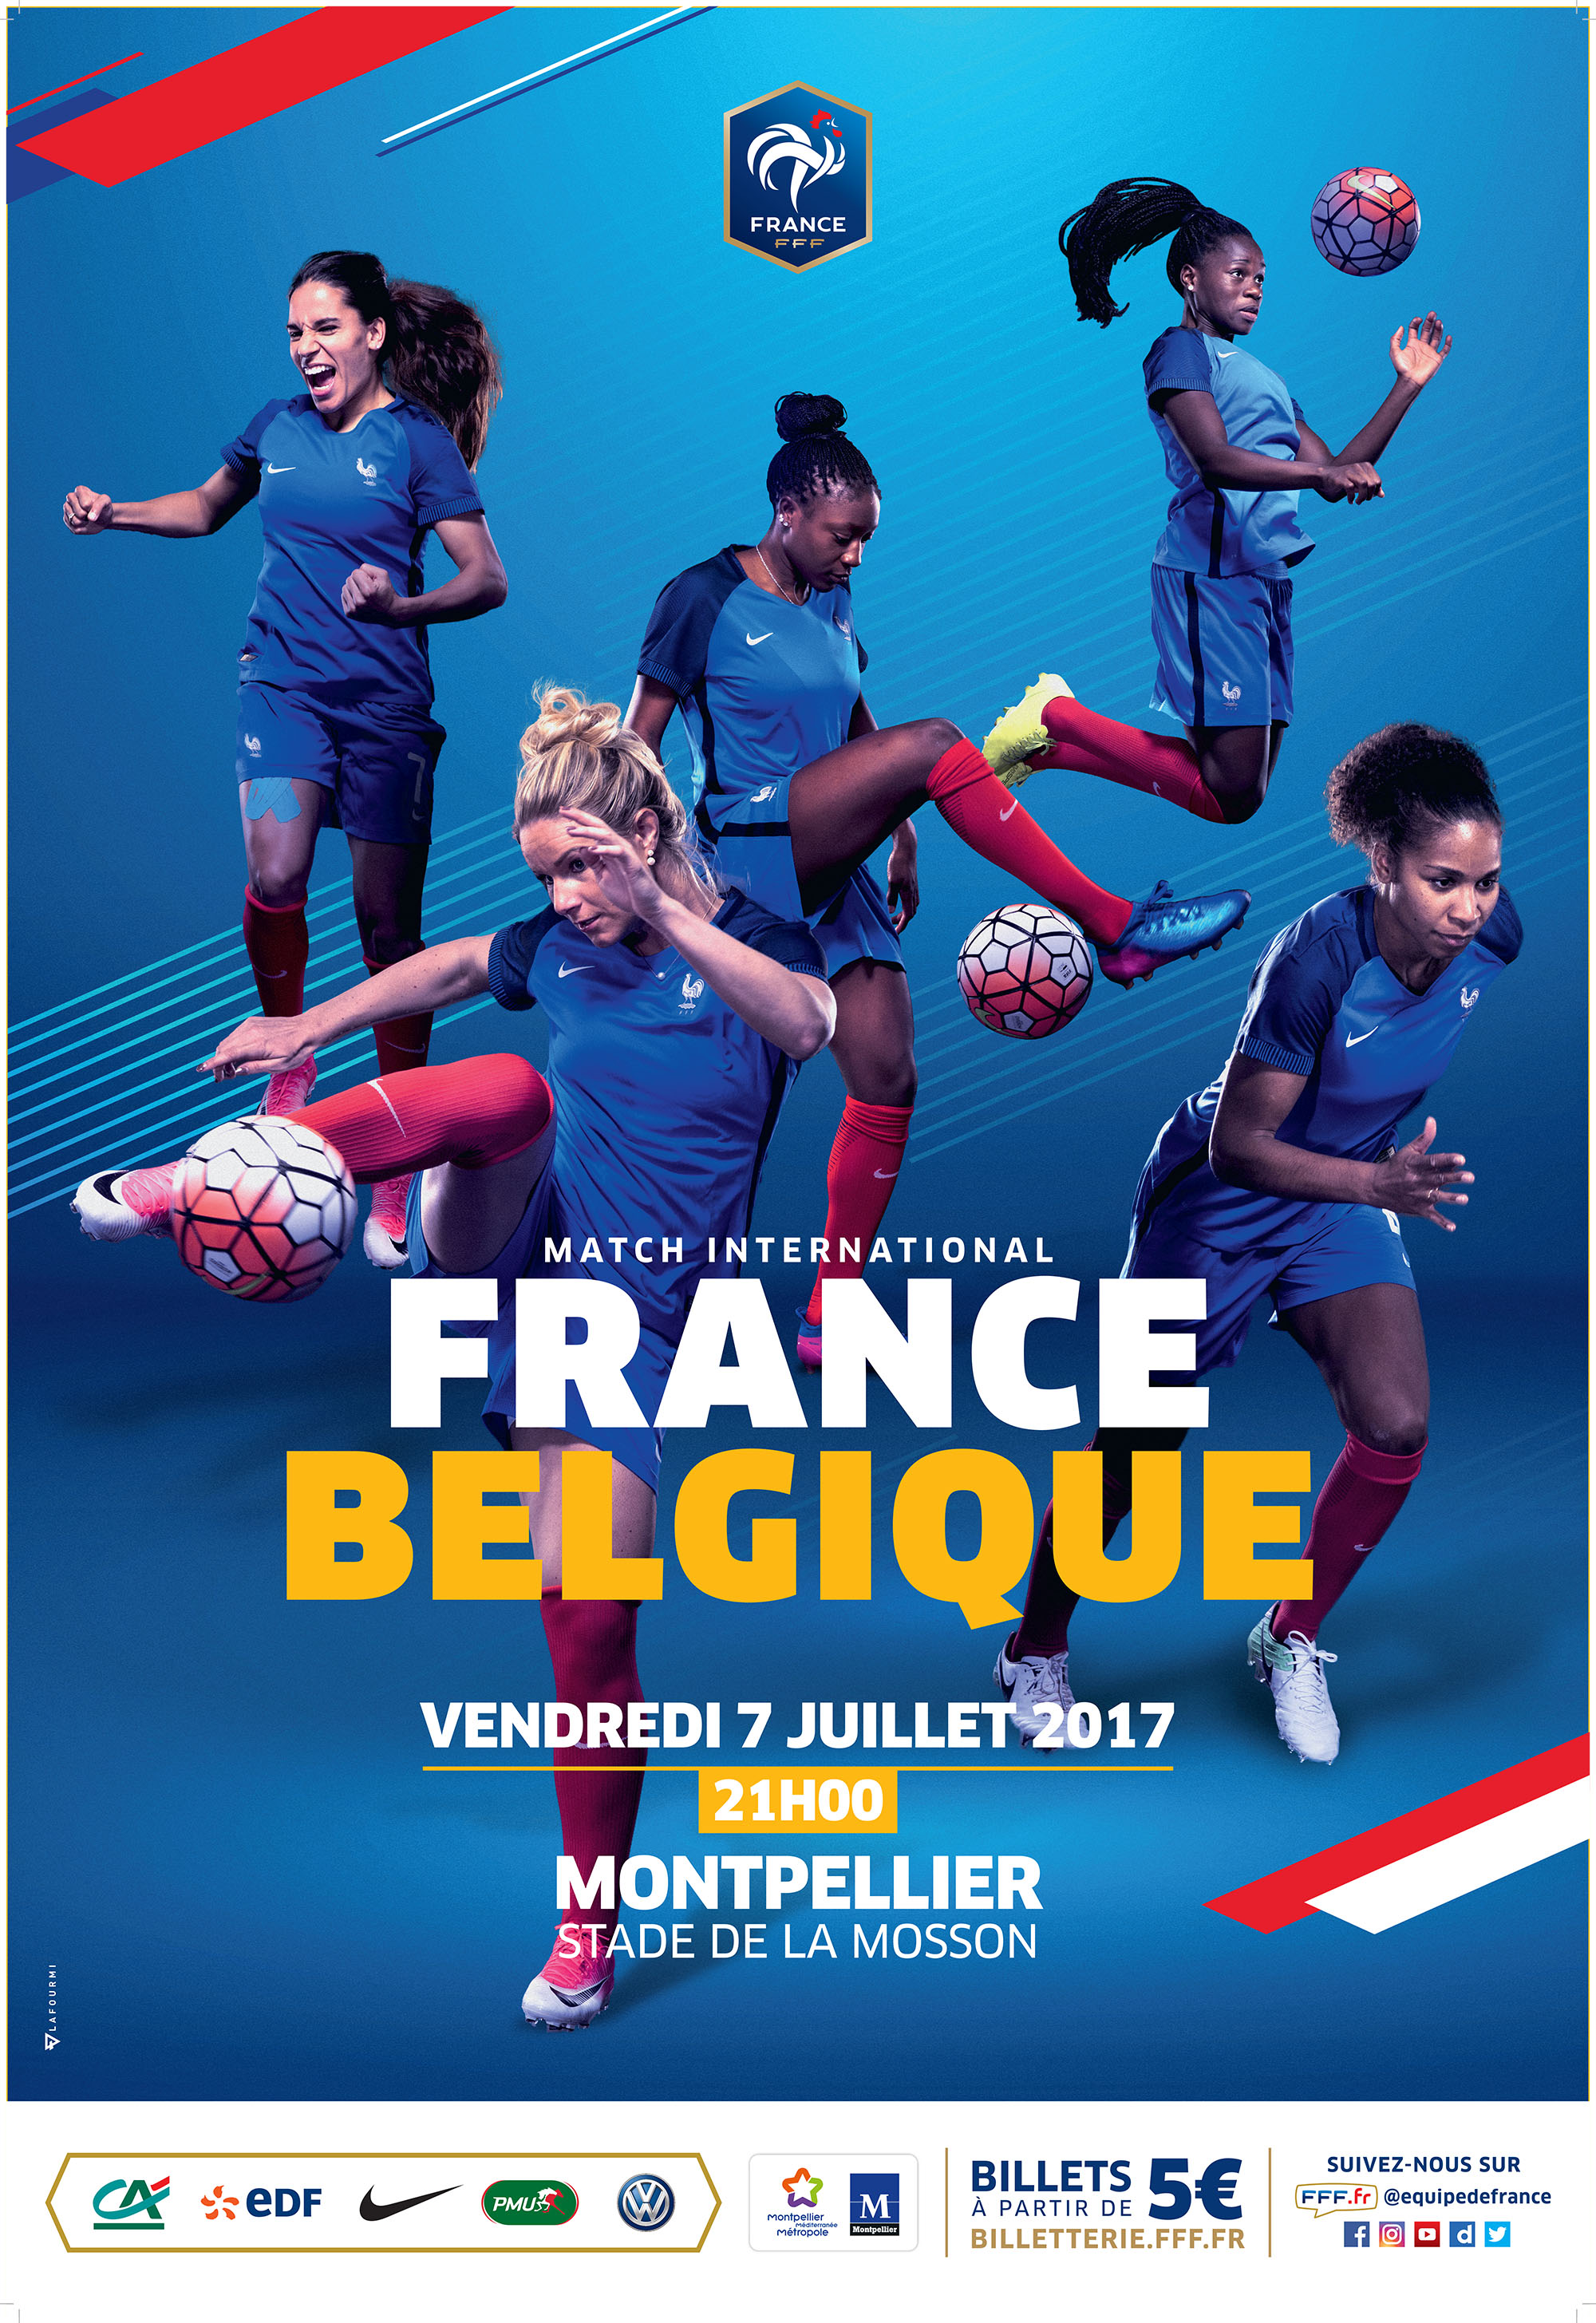 Football f minin france belgique montpellier - Resultat coupe d europe de foot ...